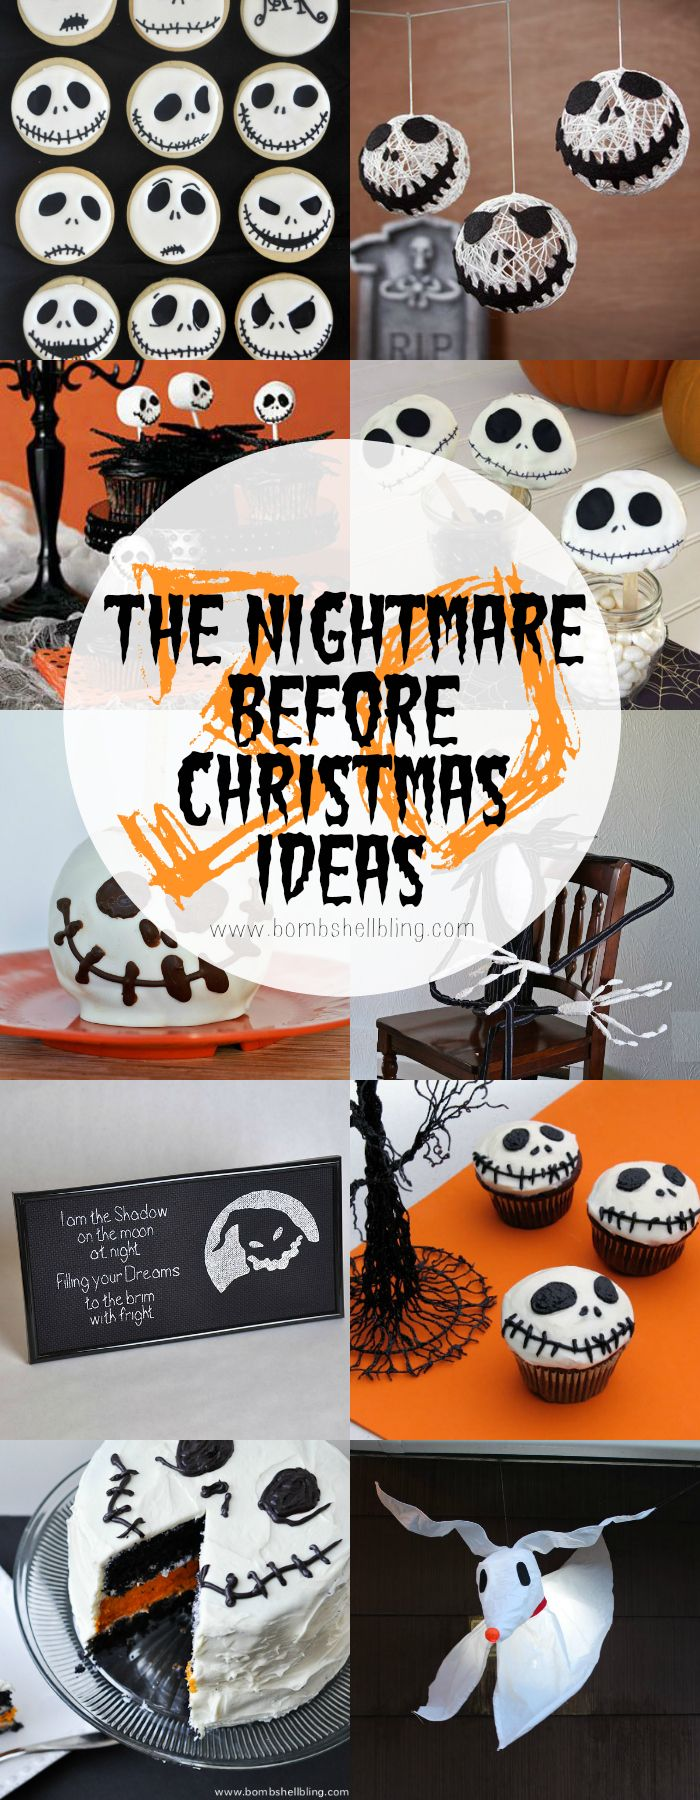 30 The Nightmare Before Christmas Ideas | Bombshell Bling